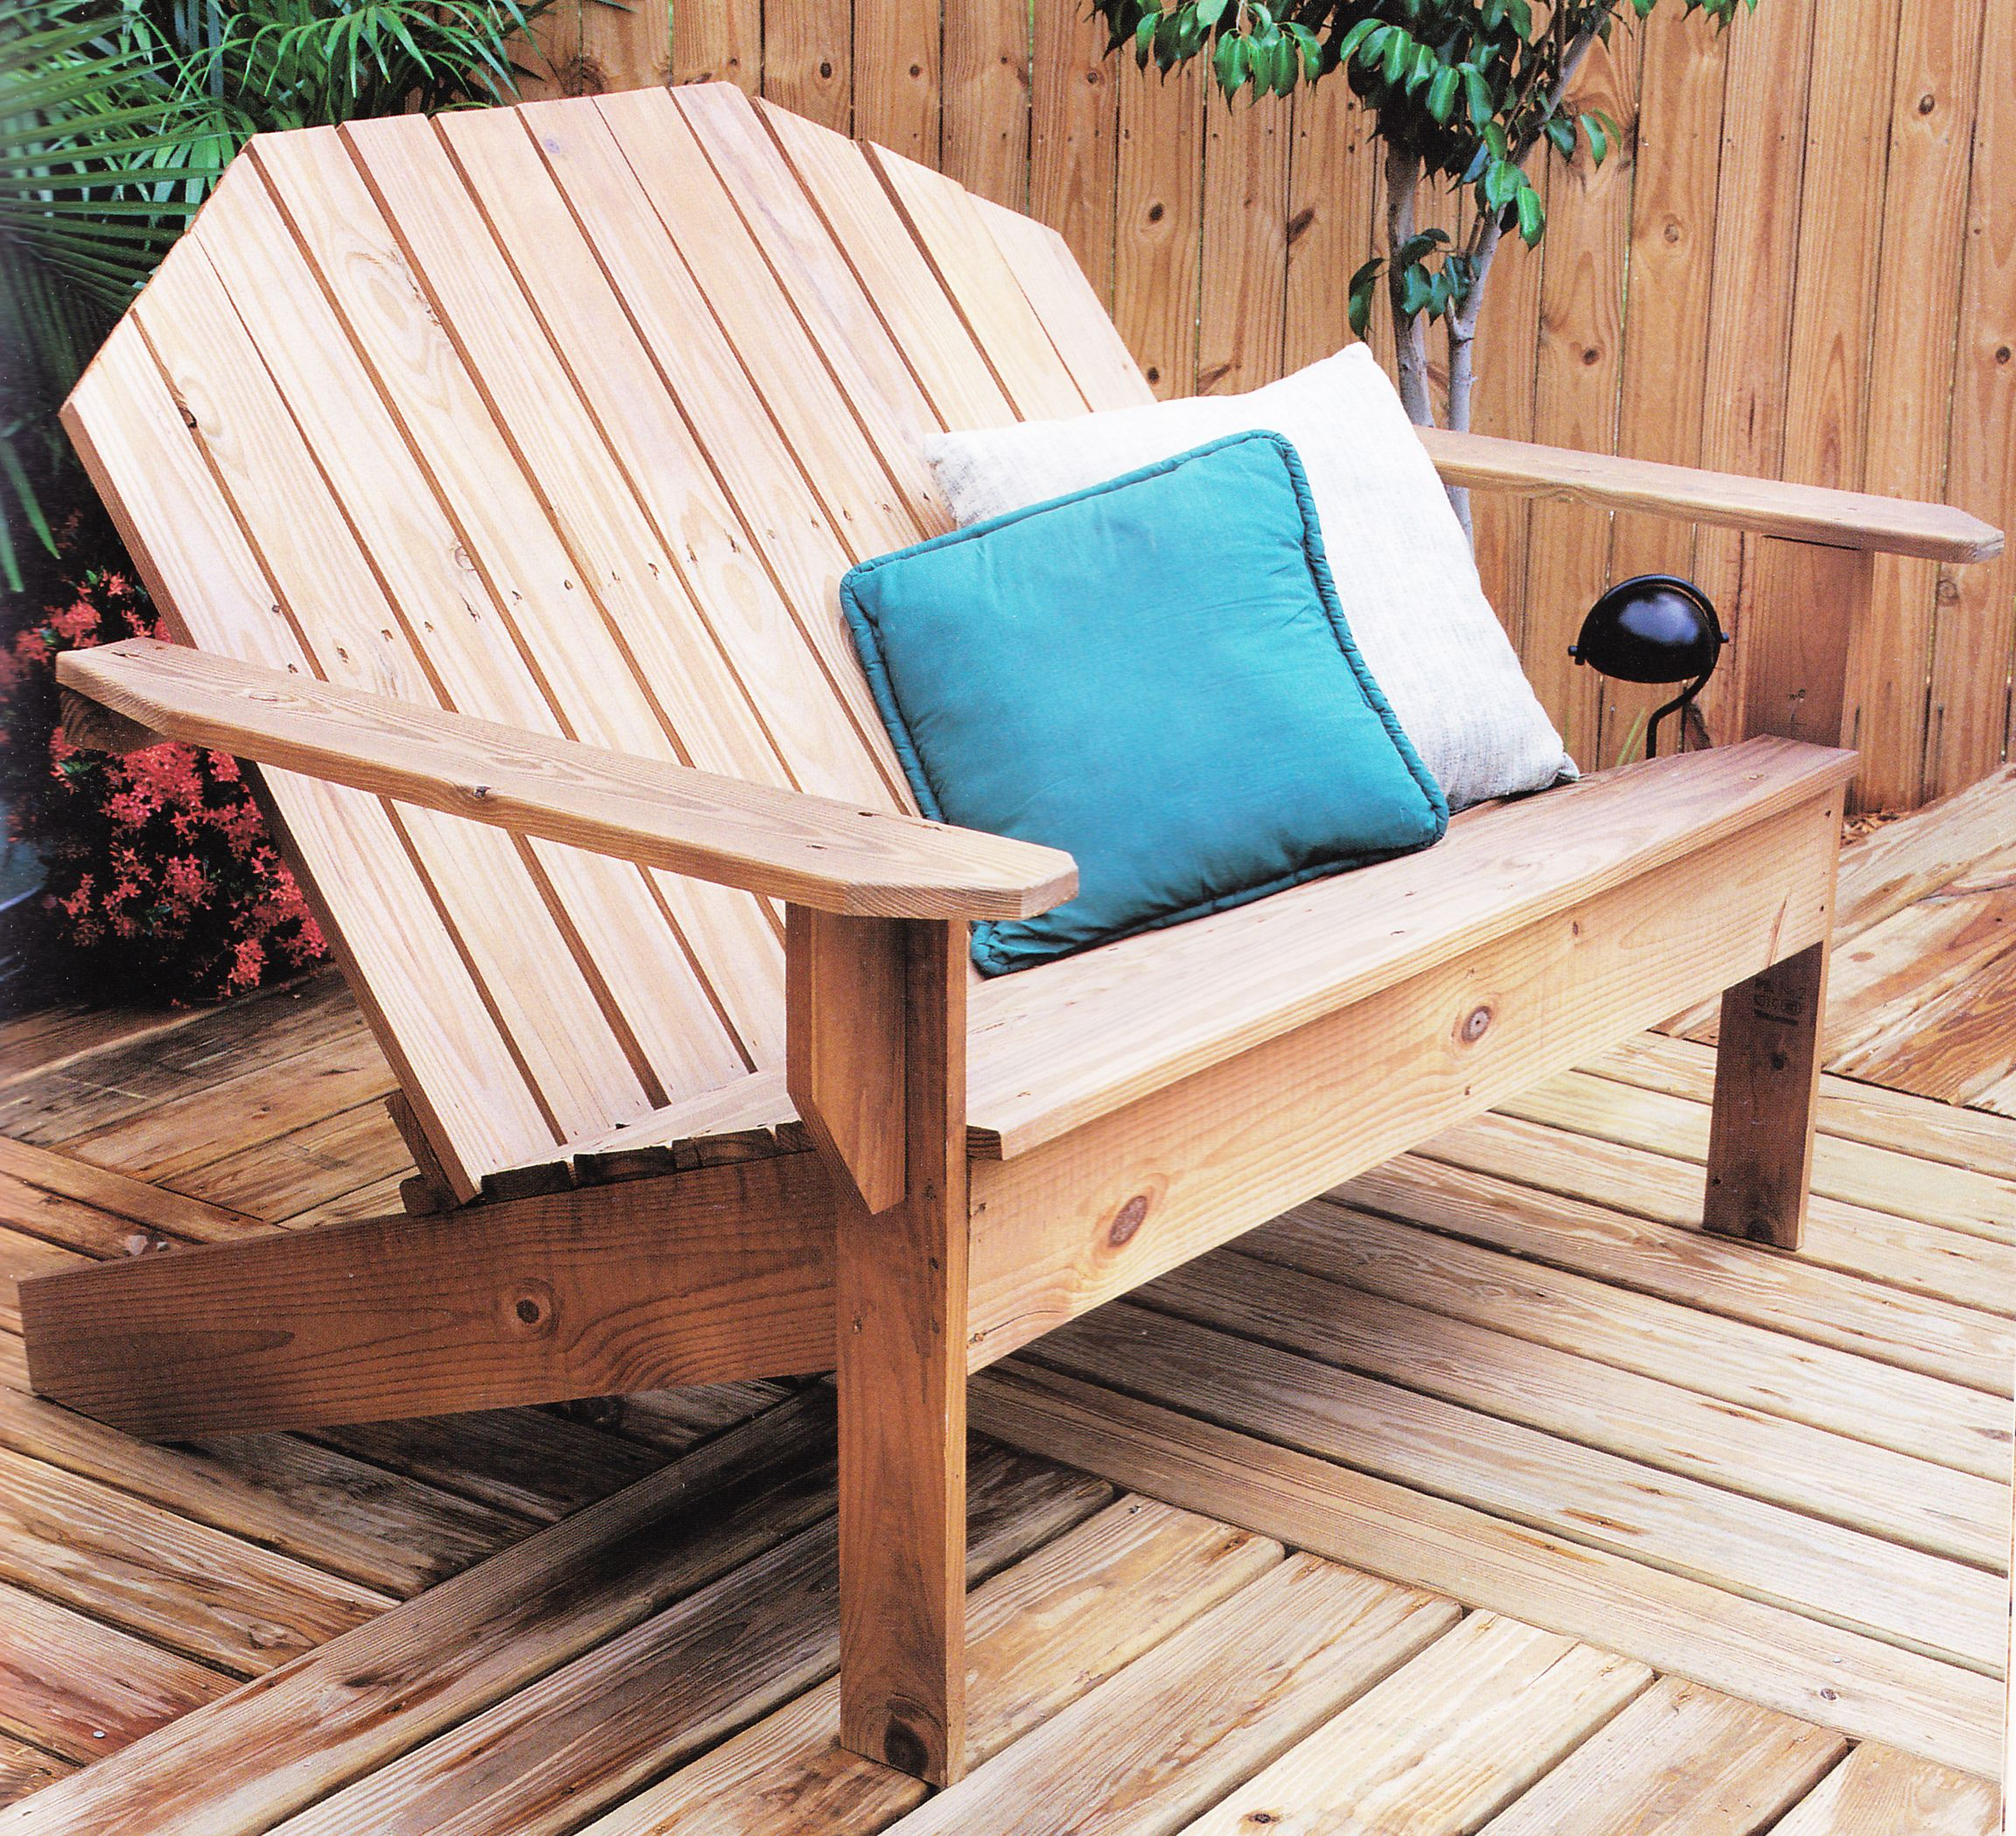 Muskoka Sofa design from 2x4 Projects for Outdoor Living